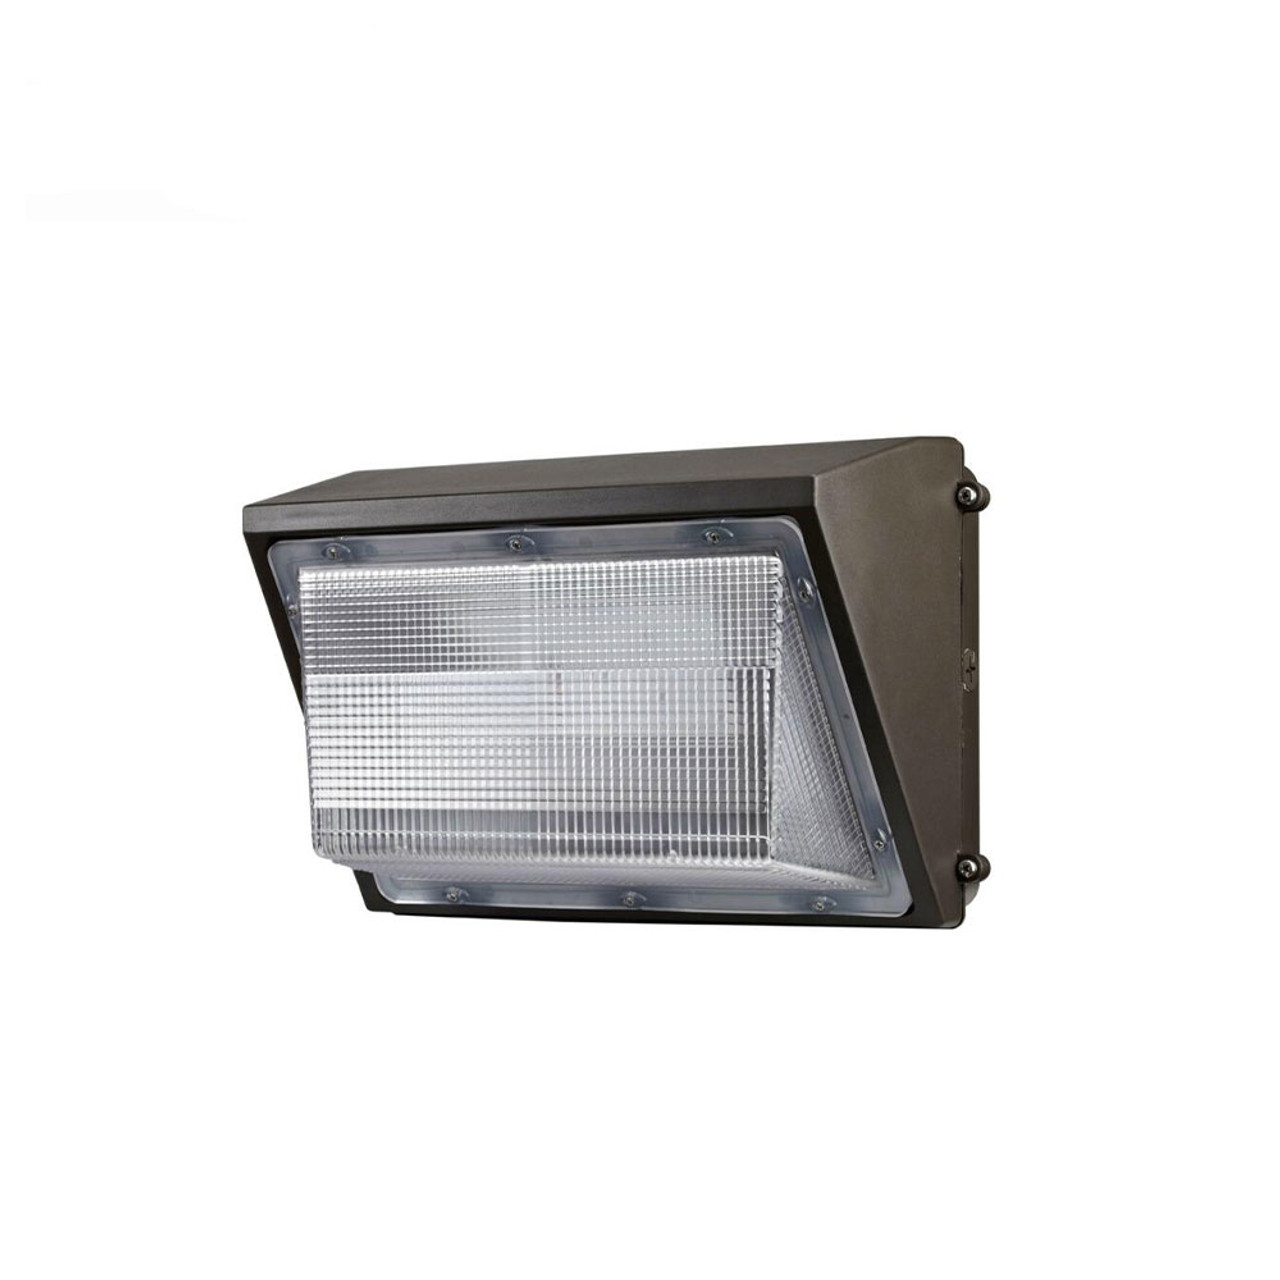 LED Wall Pack 60 Watt, 7800 lumen, 5000 Kelvin 100-277 volt, UL DLC Listed